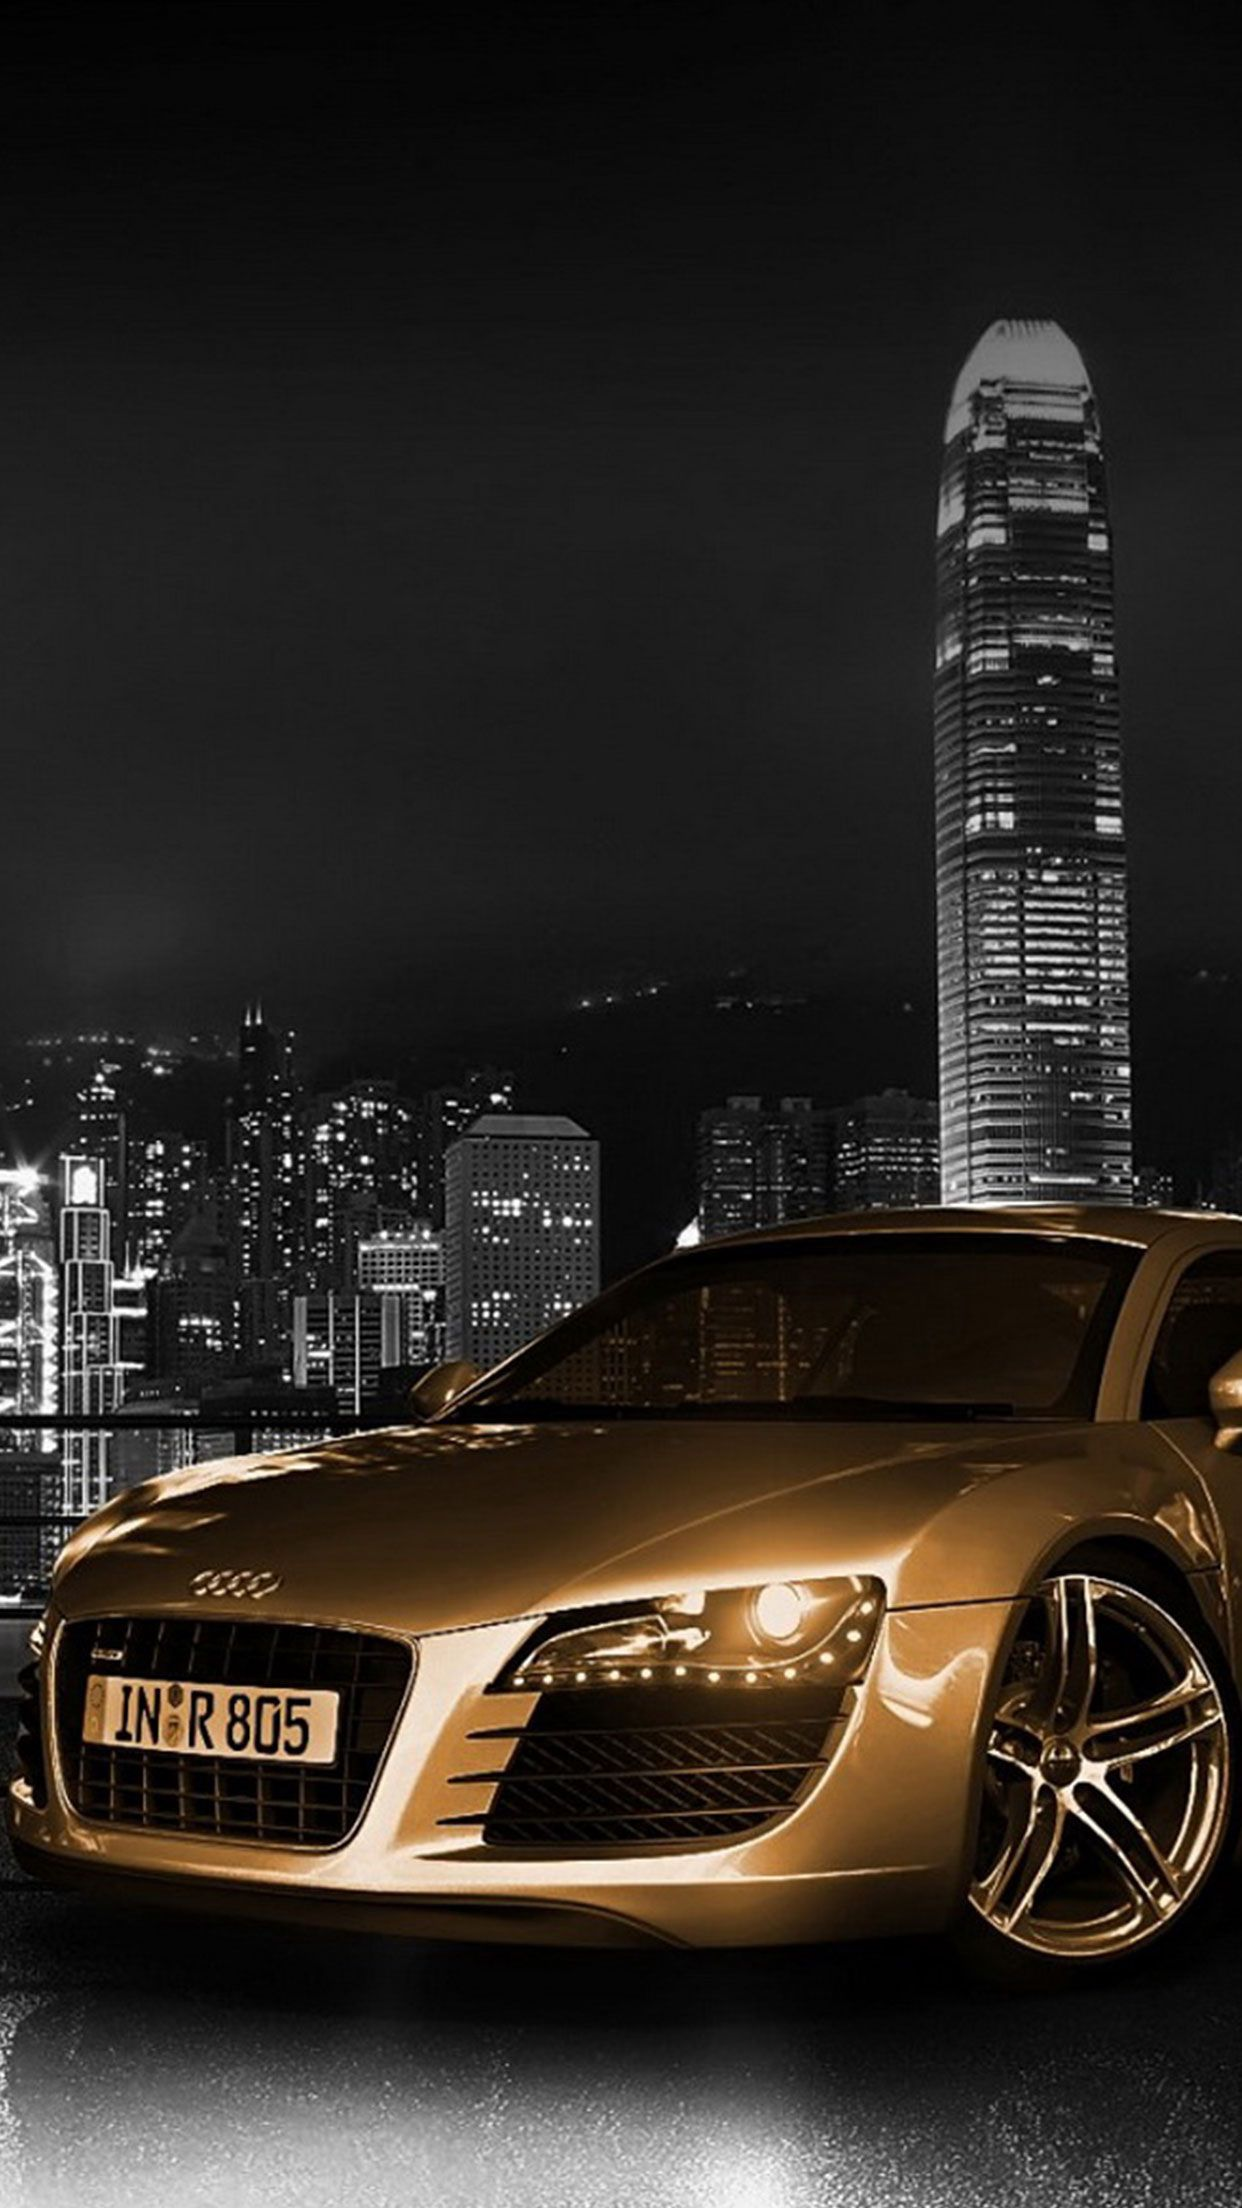 Audi Car Wallpaper Iphone Android Car Audi More On